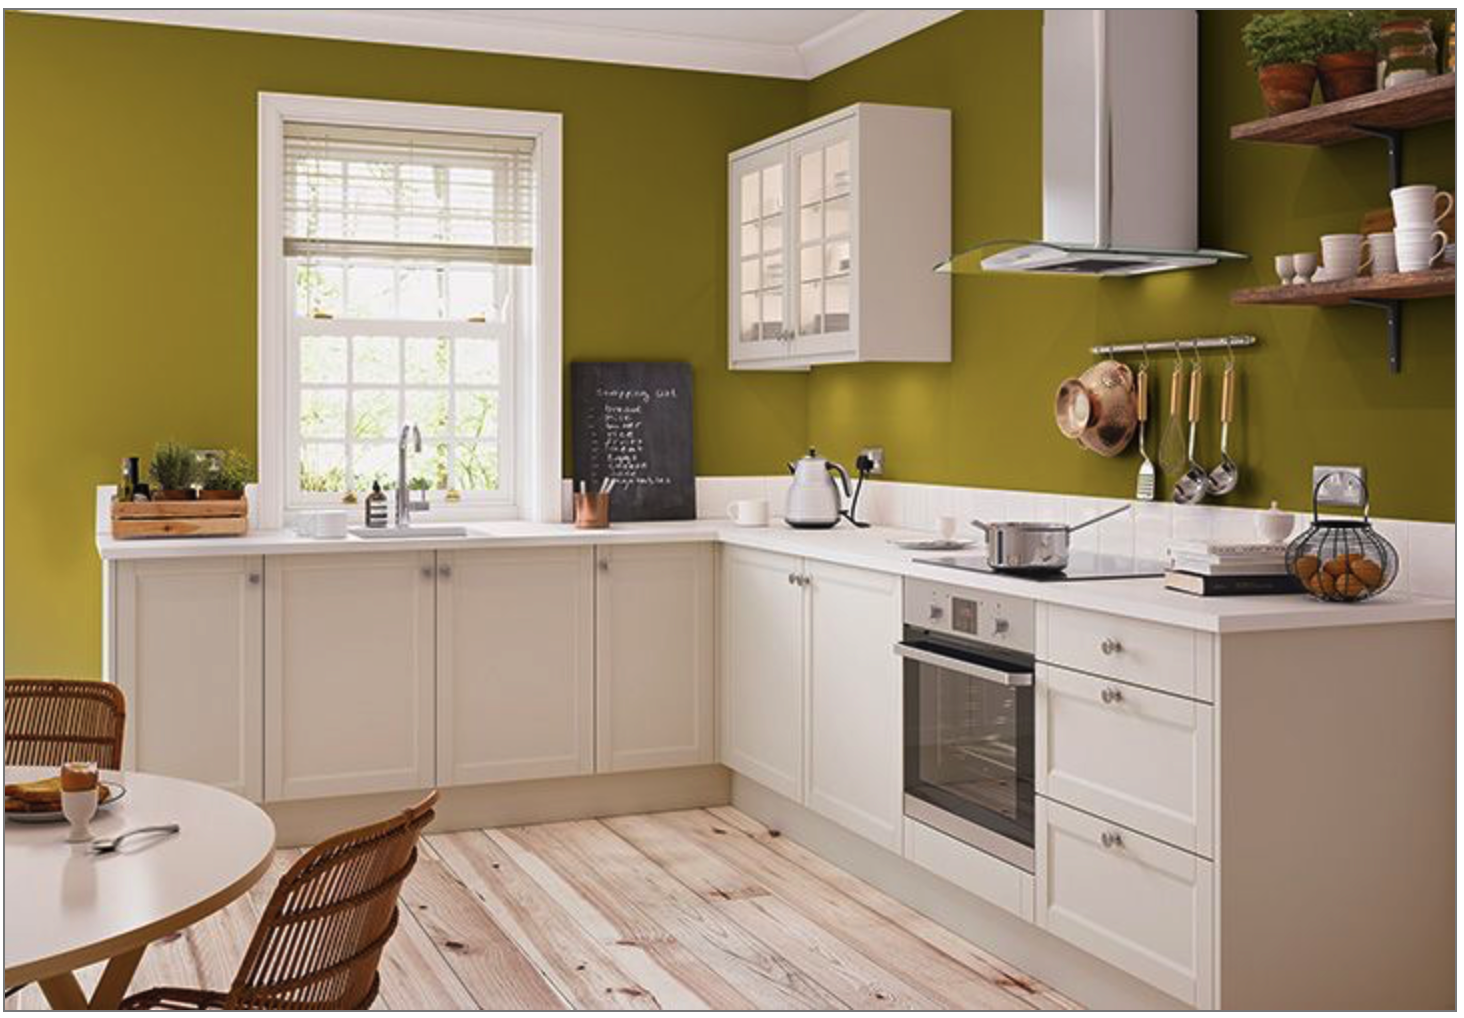 Homebase launches brand new paint range